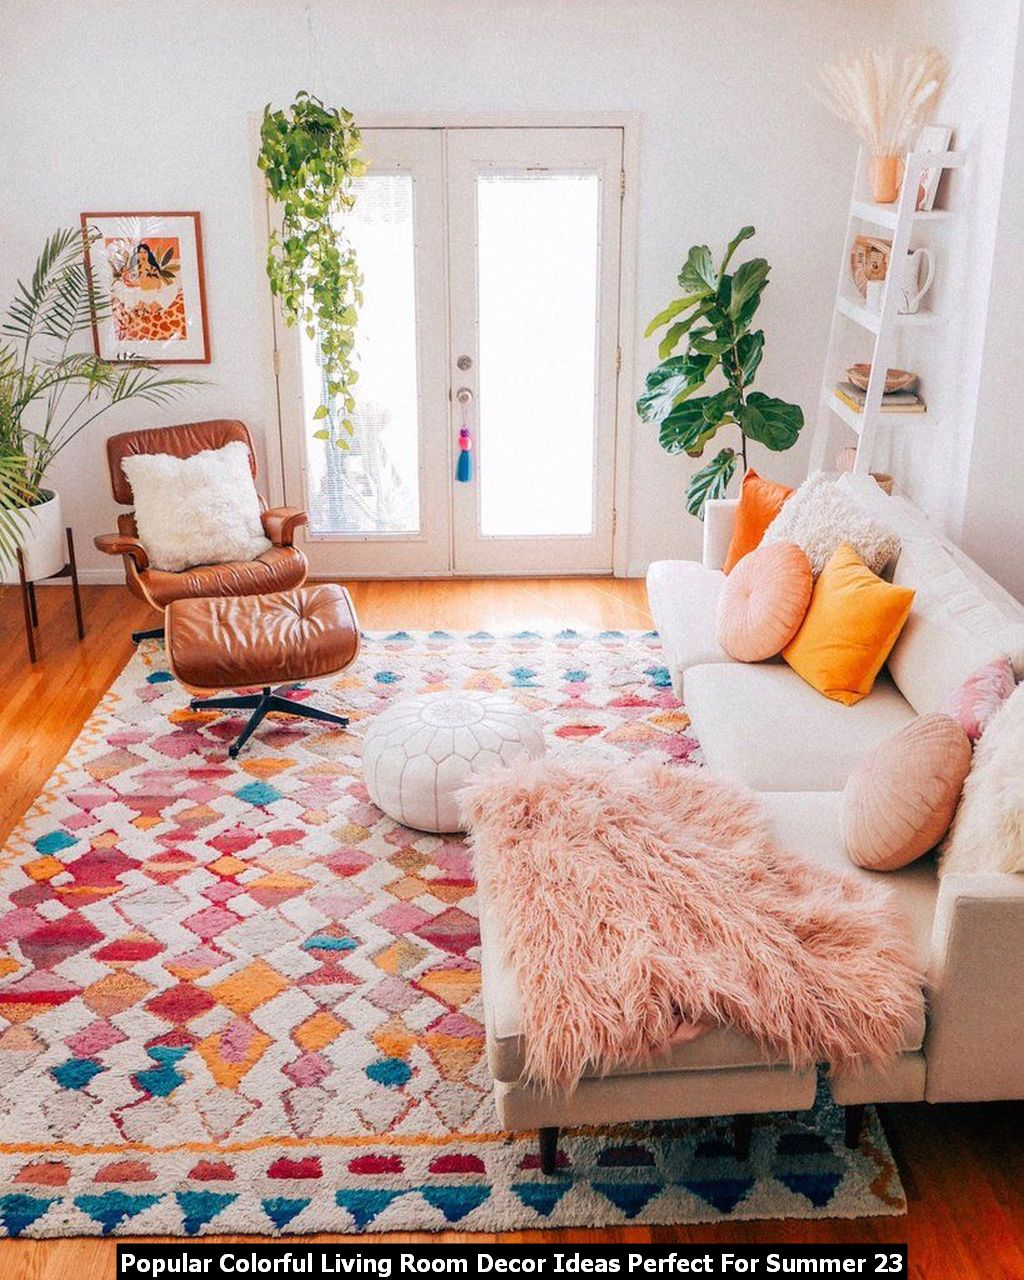 Popular Colorful Living Room Decor Ideas Perfect For Summer 23